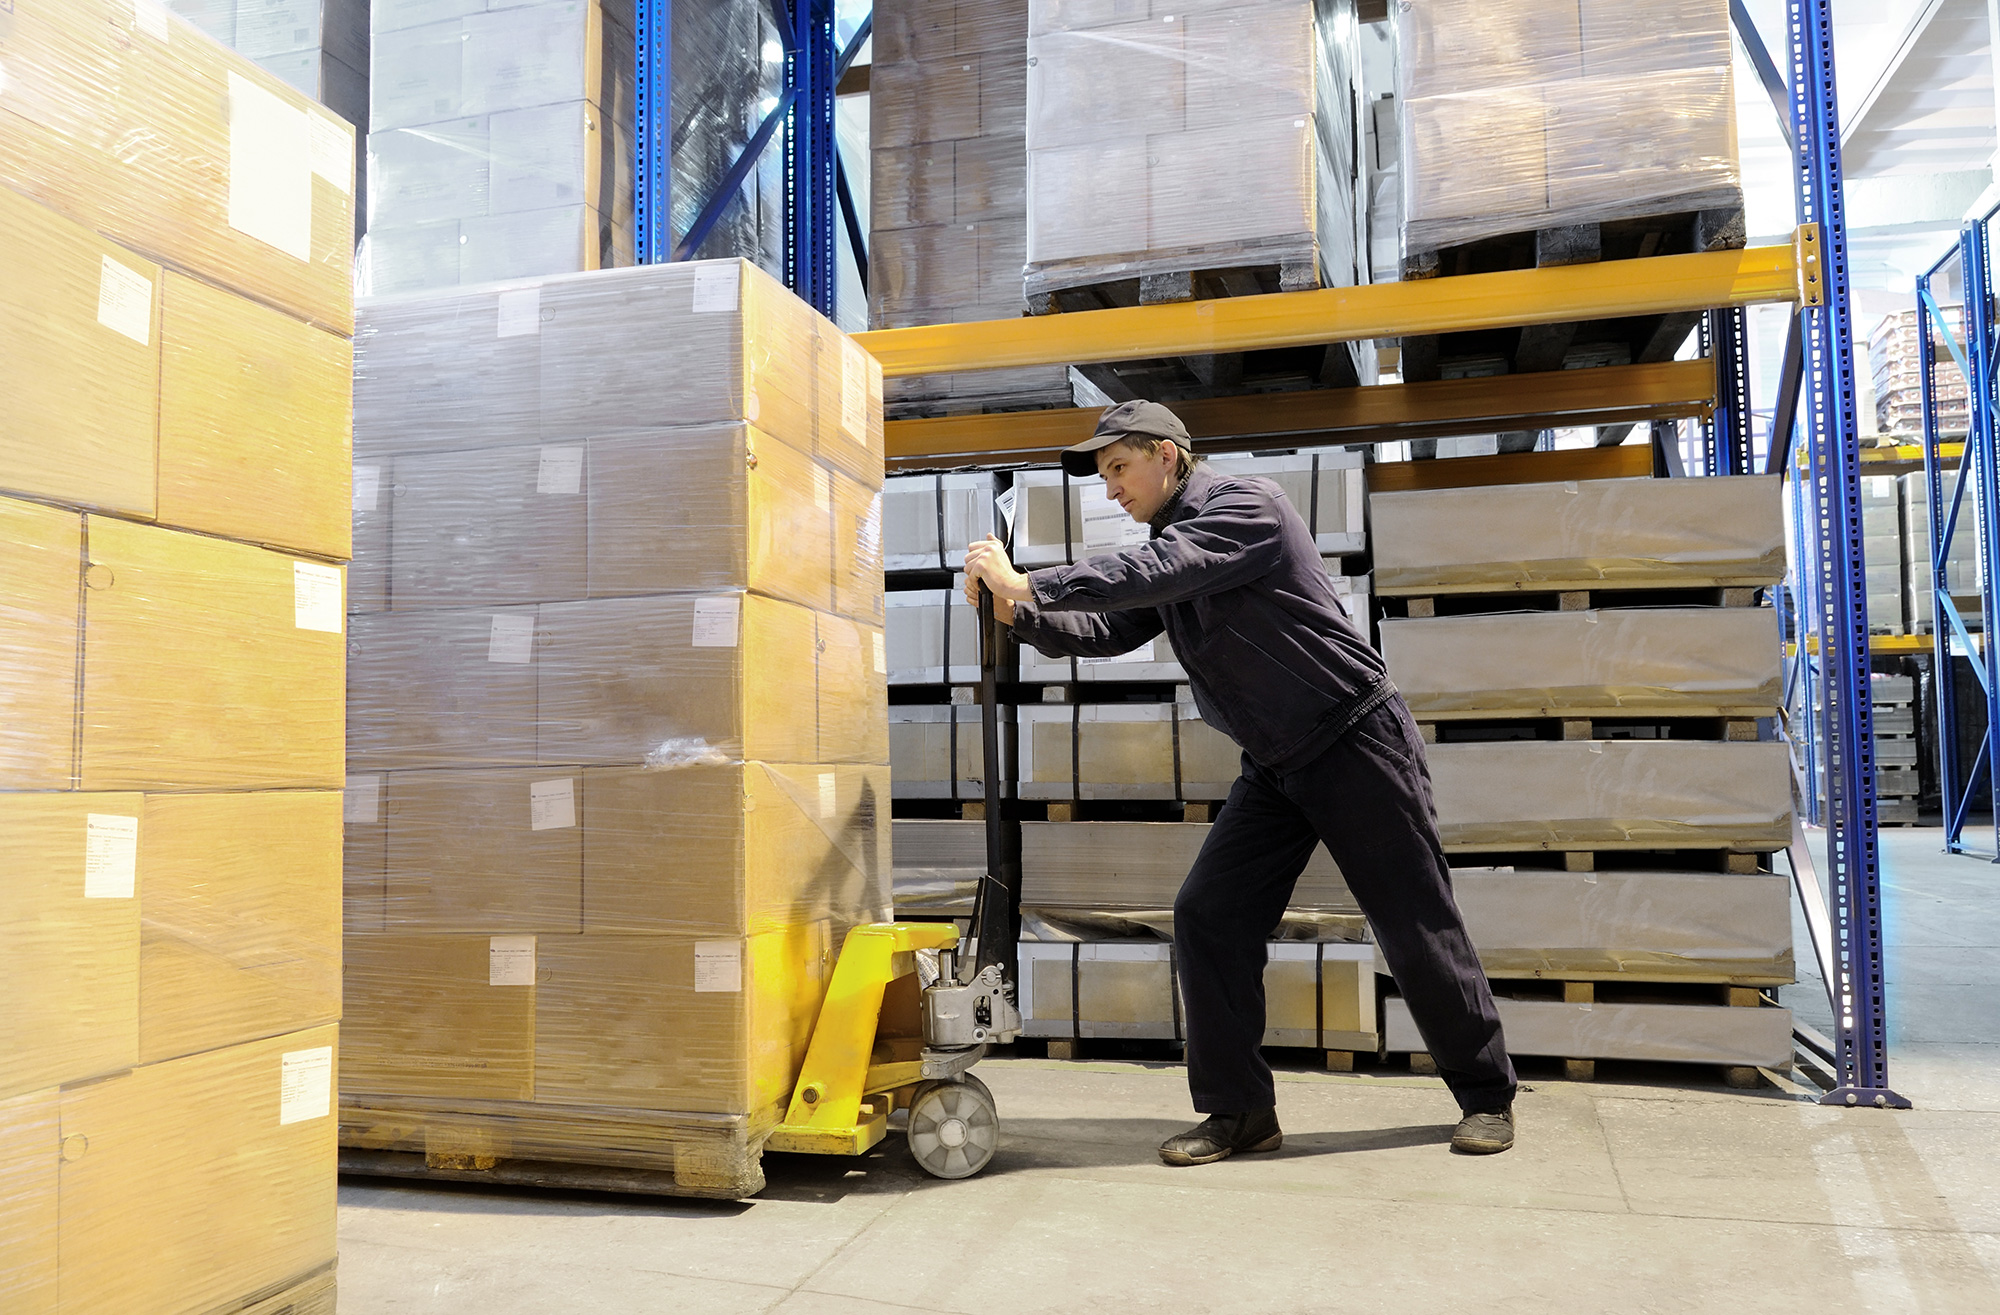 Corporate Services, Inc. is hiring Warehouse Jobs — up to $14.50/hour — apply today!